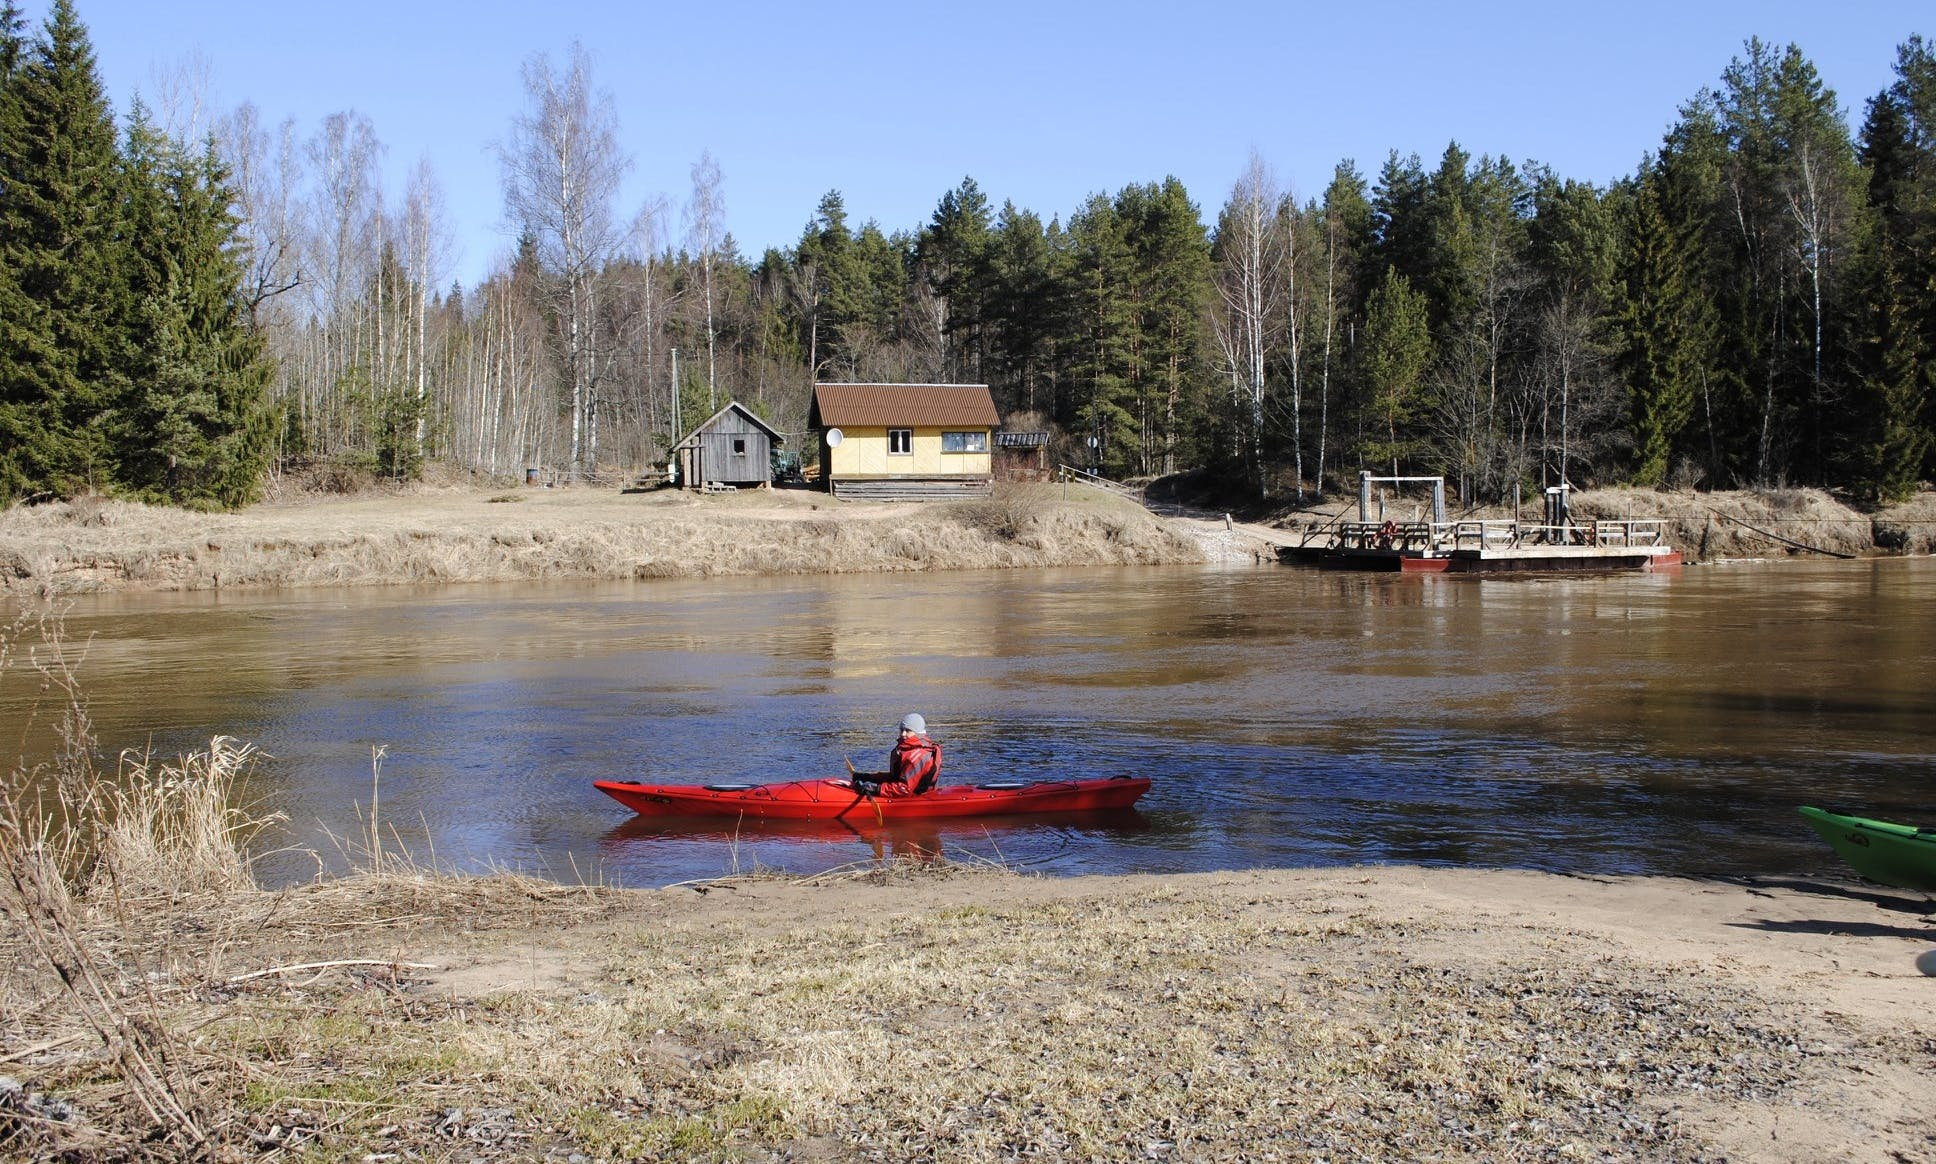 Kayak Dag tiwok EVO, Kayak and Canoe rental Laivuire.lv